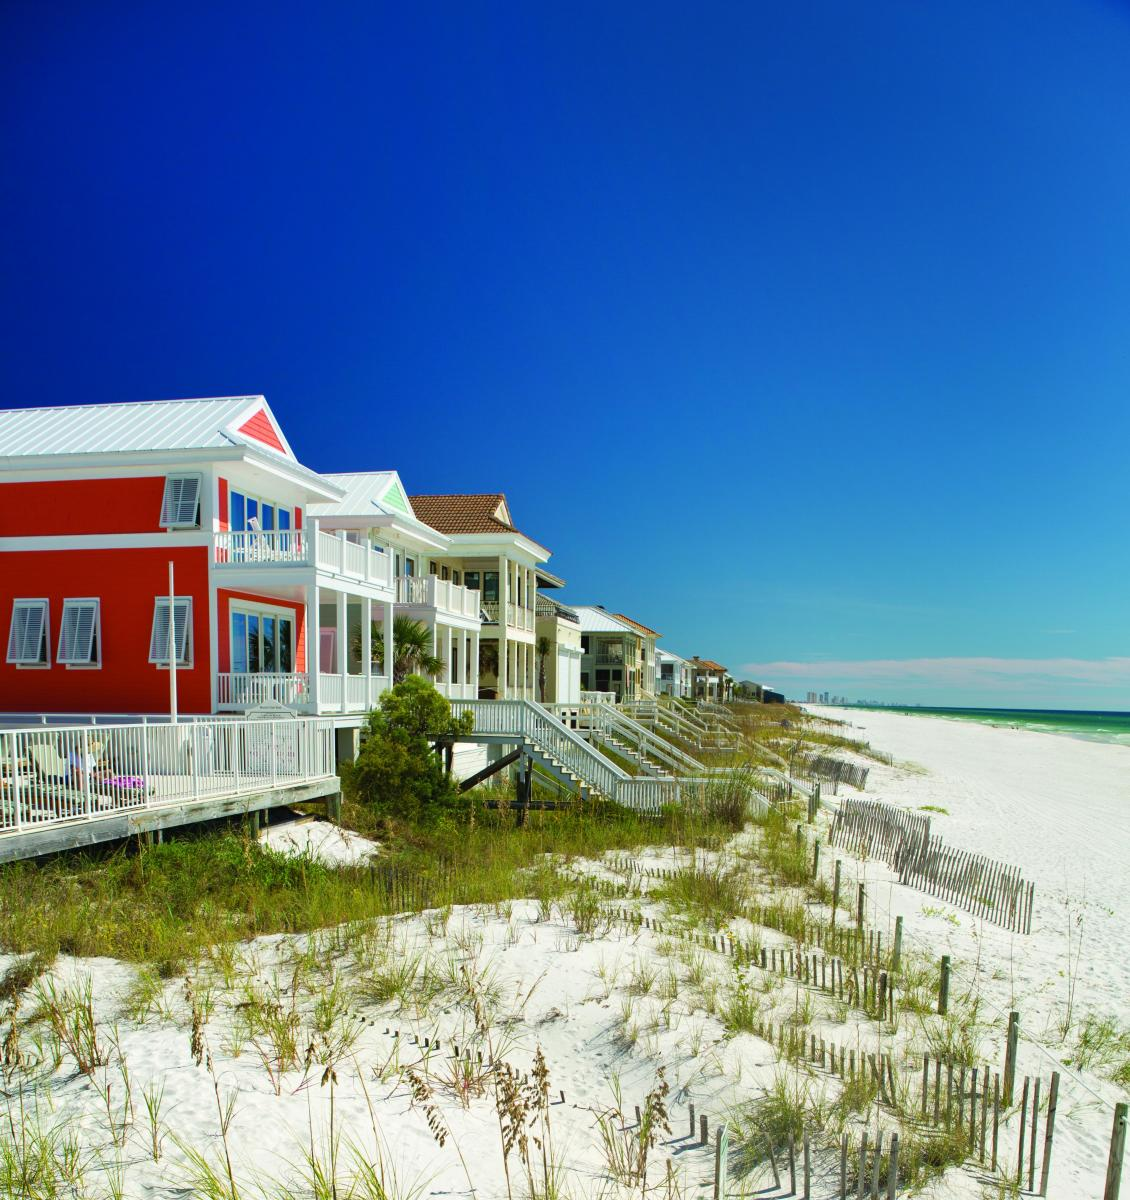 Florida Beach House Weddings: Beach Houses & Townhome Rentals